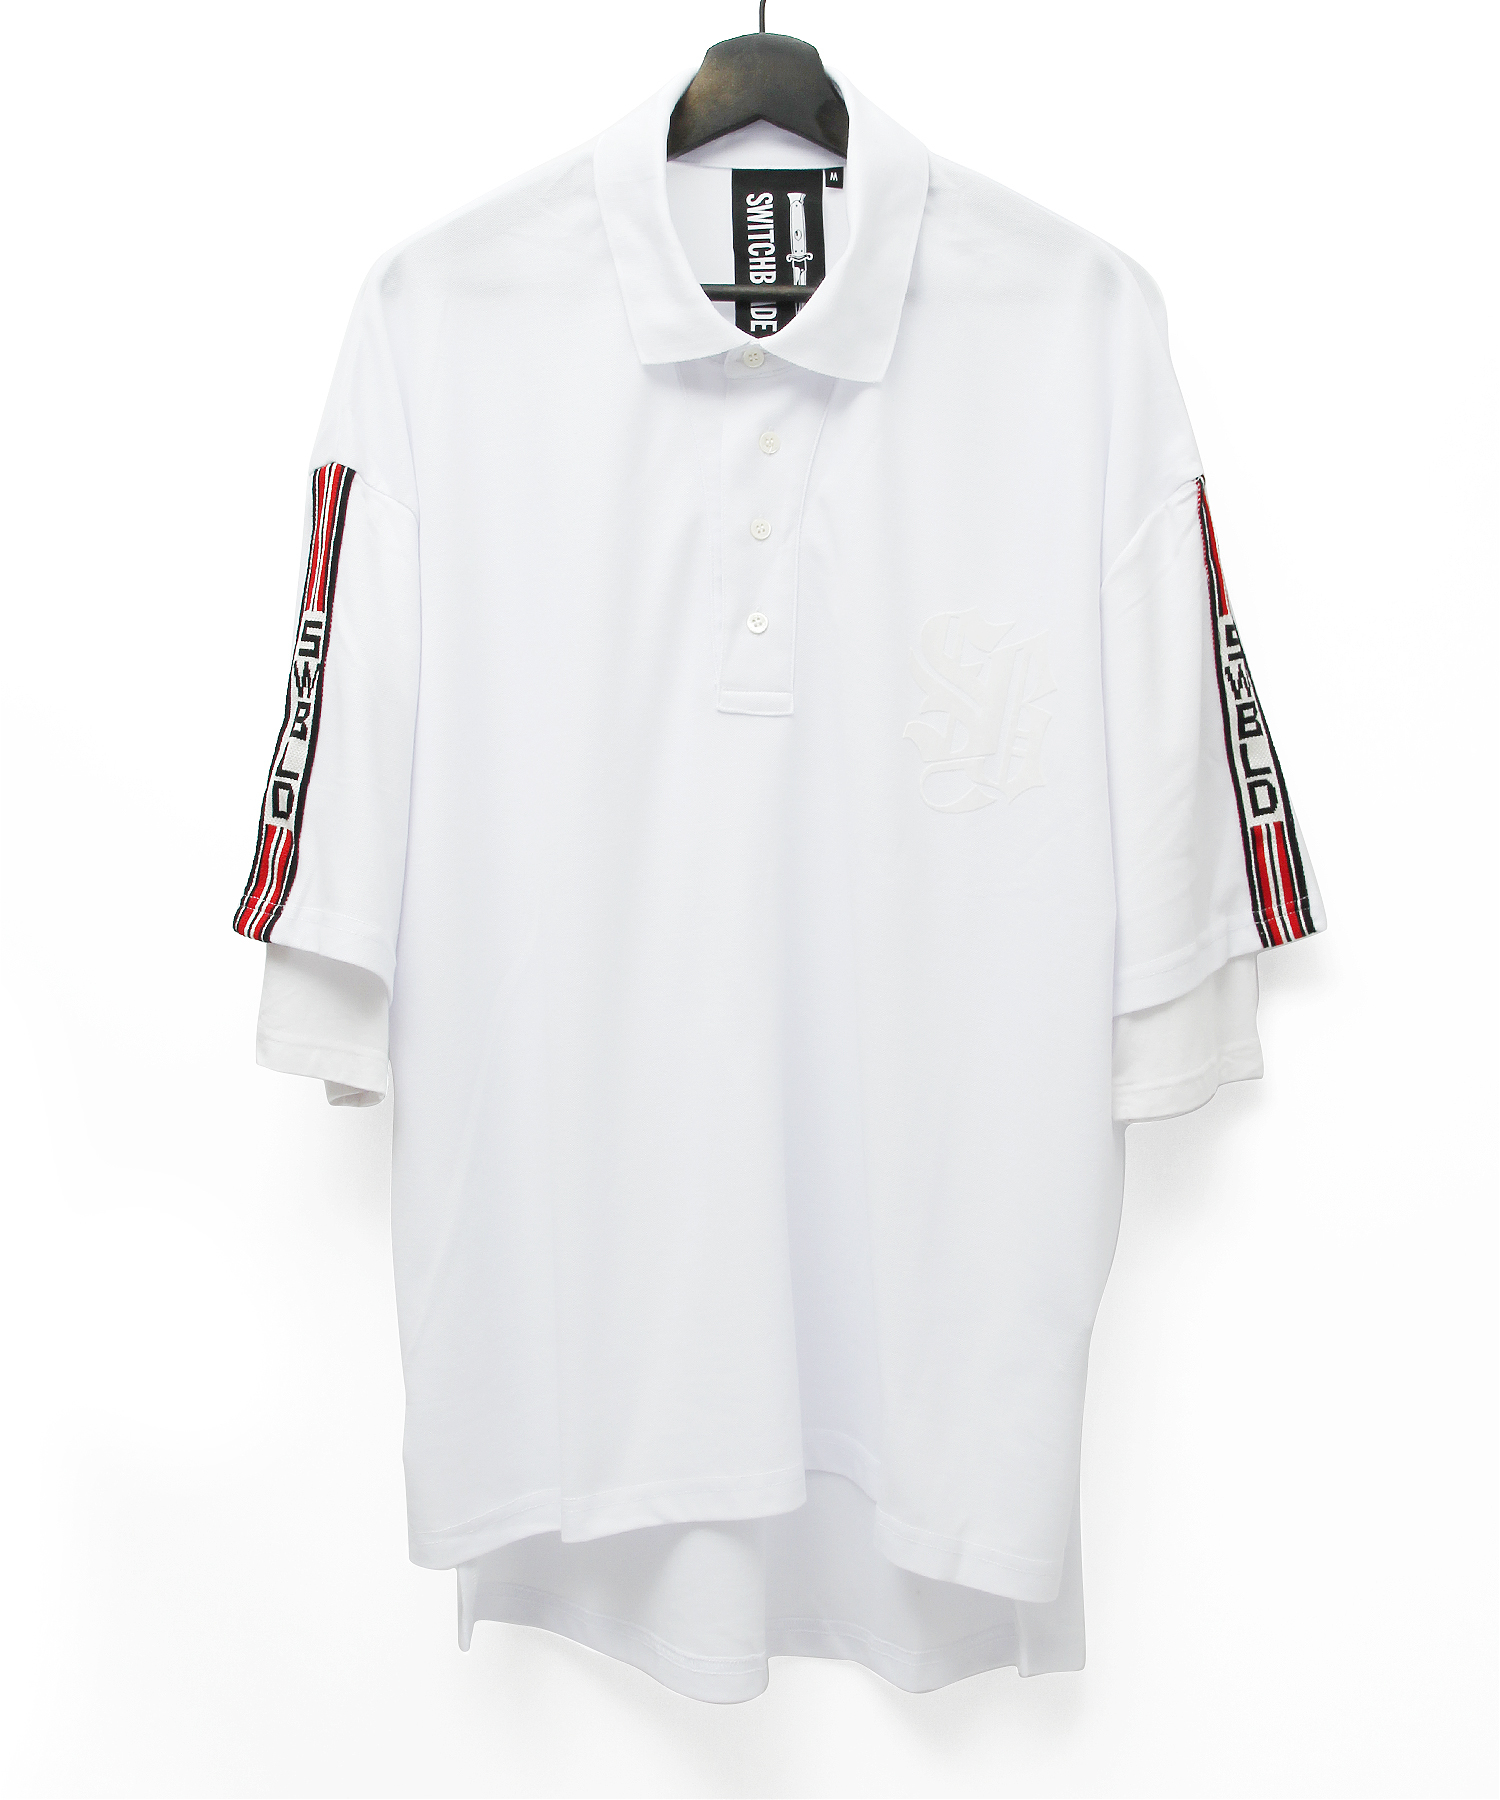 SWBLD LINE POLO SHIRT [WHITE]